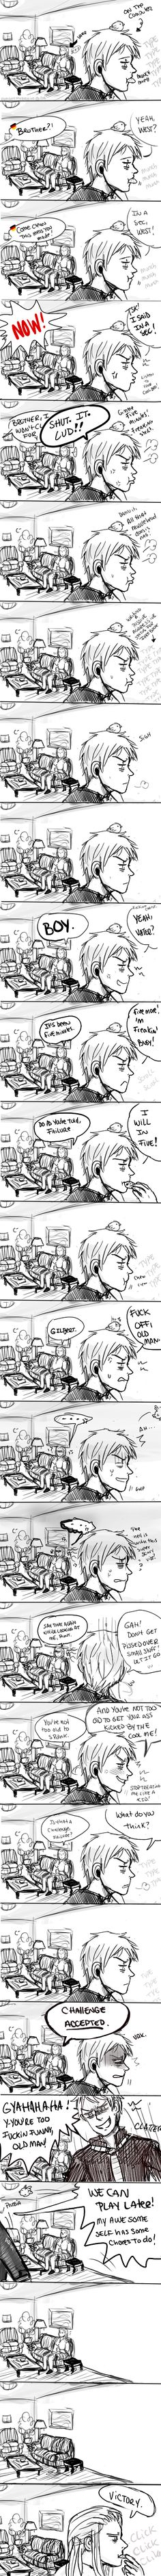 APH: Don't mess with Vater by Assby on DeviantArt